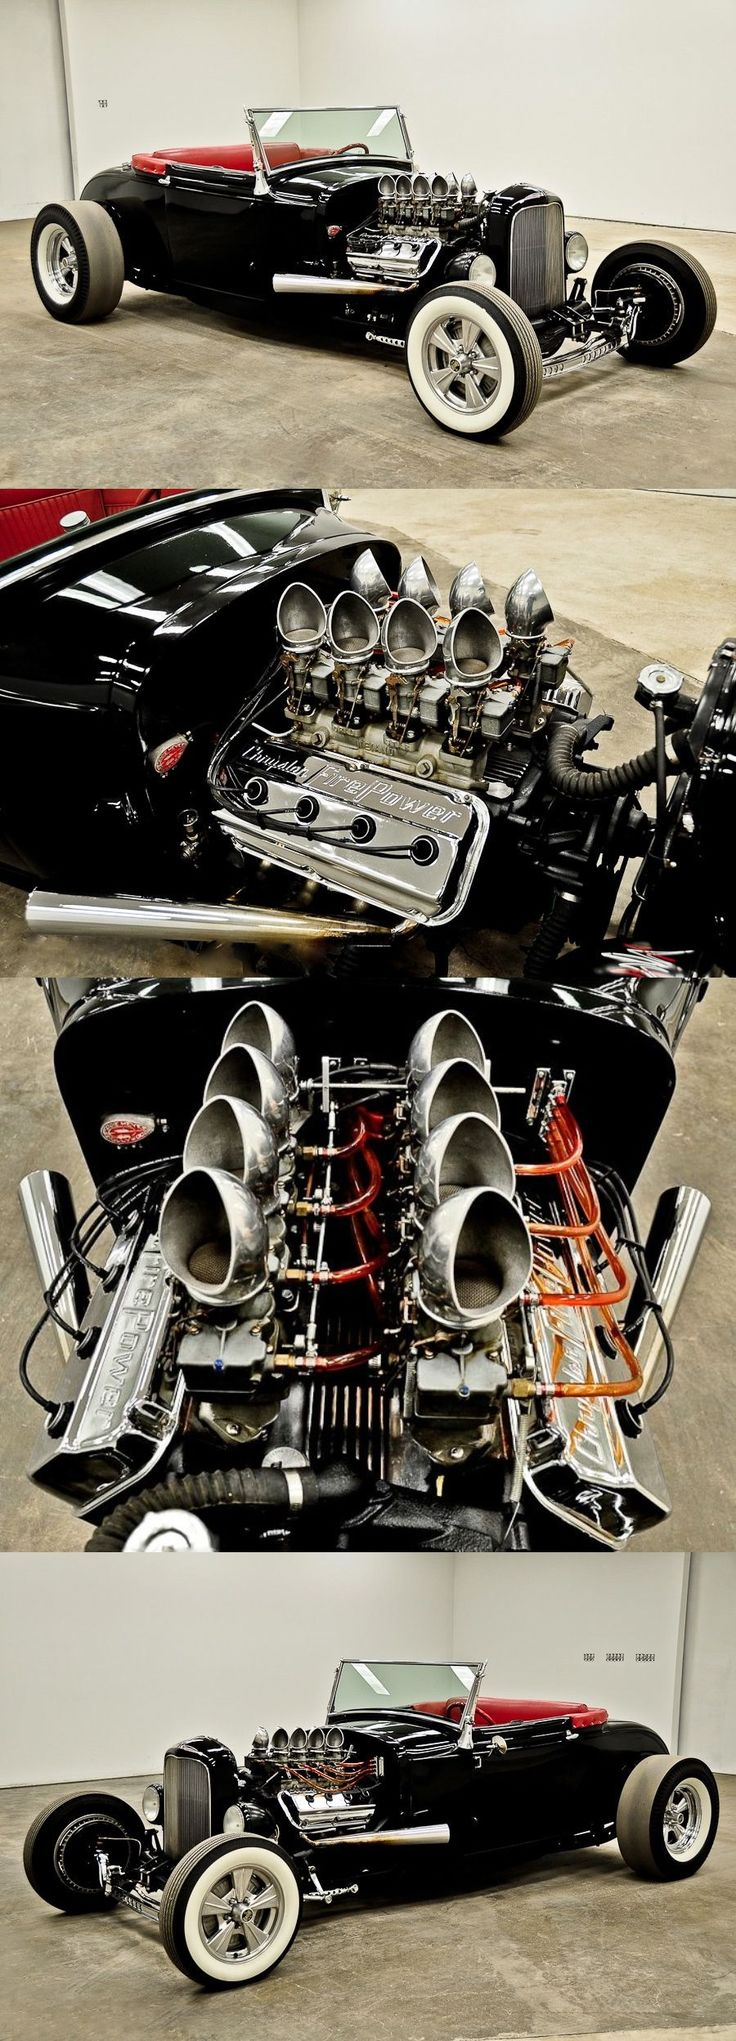 Ideas for my new street rod (More at pinterest.com/gary5mith/ideas-for-my-new-street-rod/) hot rod.